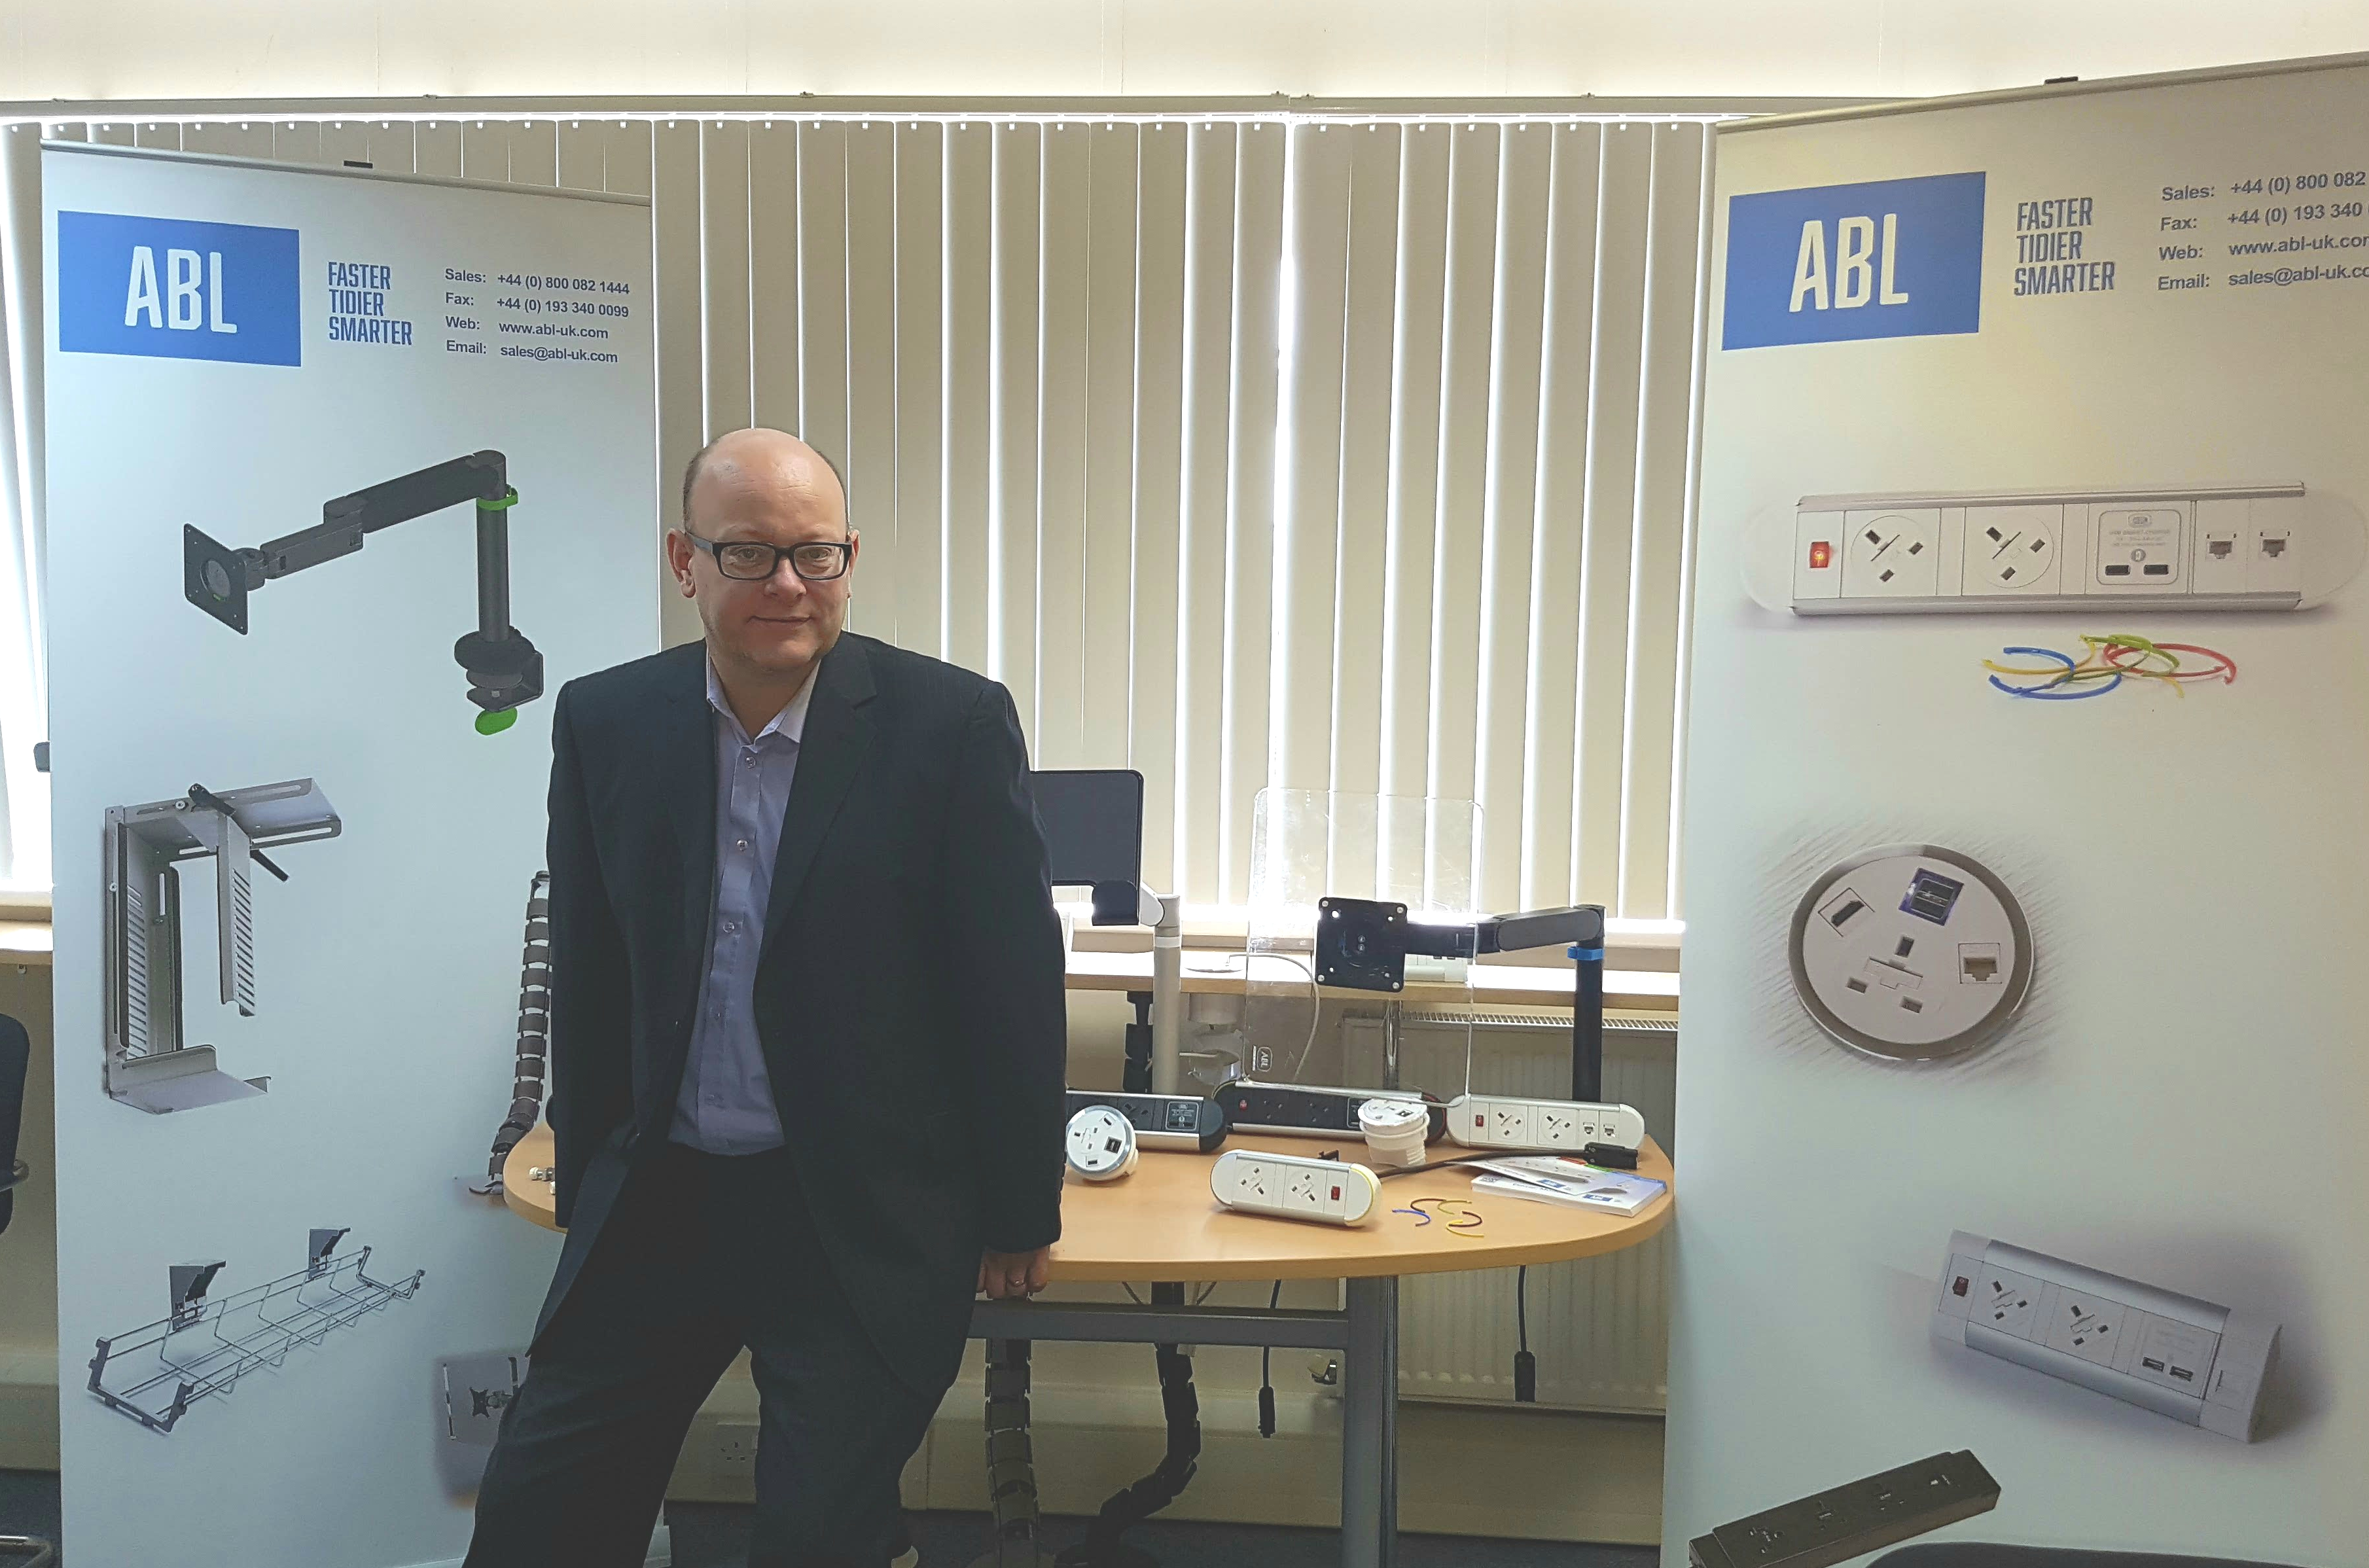 Paul Mckenzie is ABL's new Finance Director!